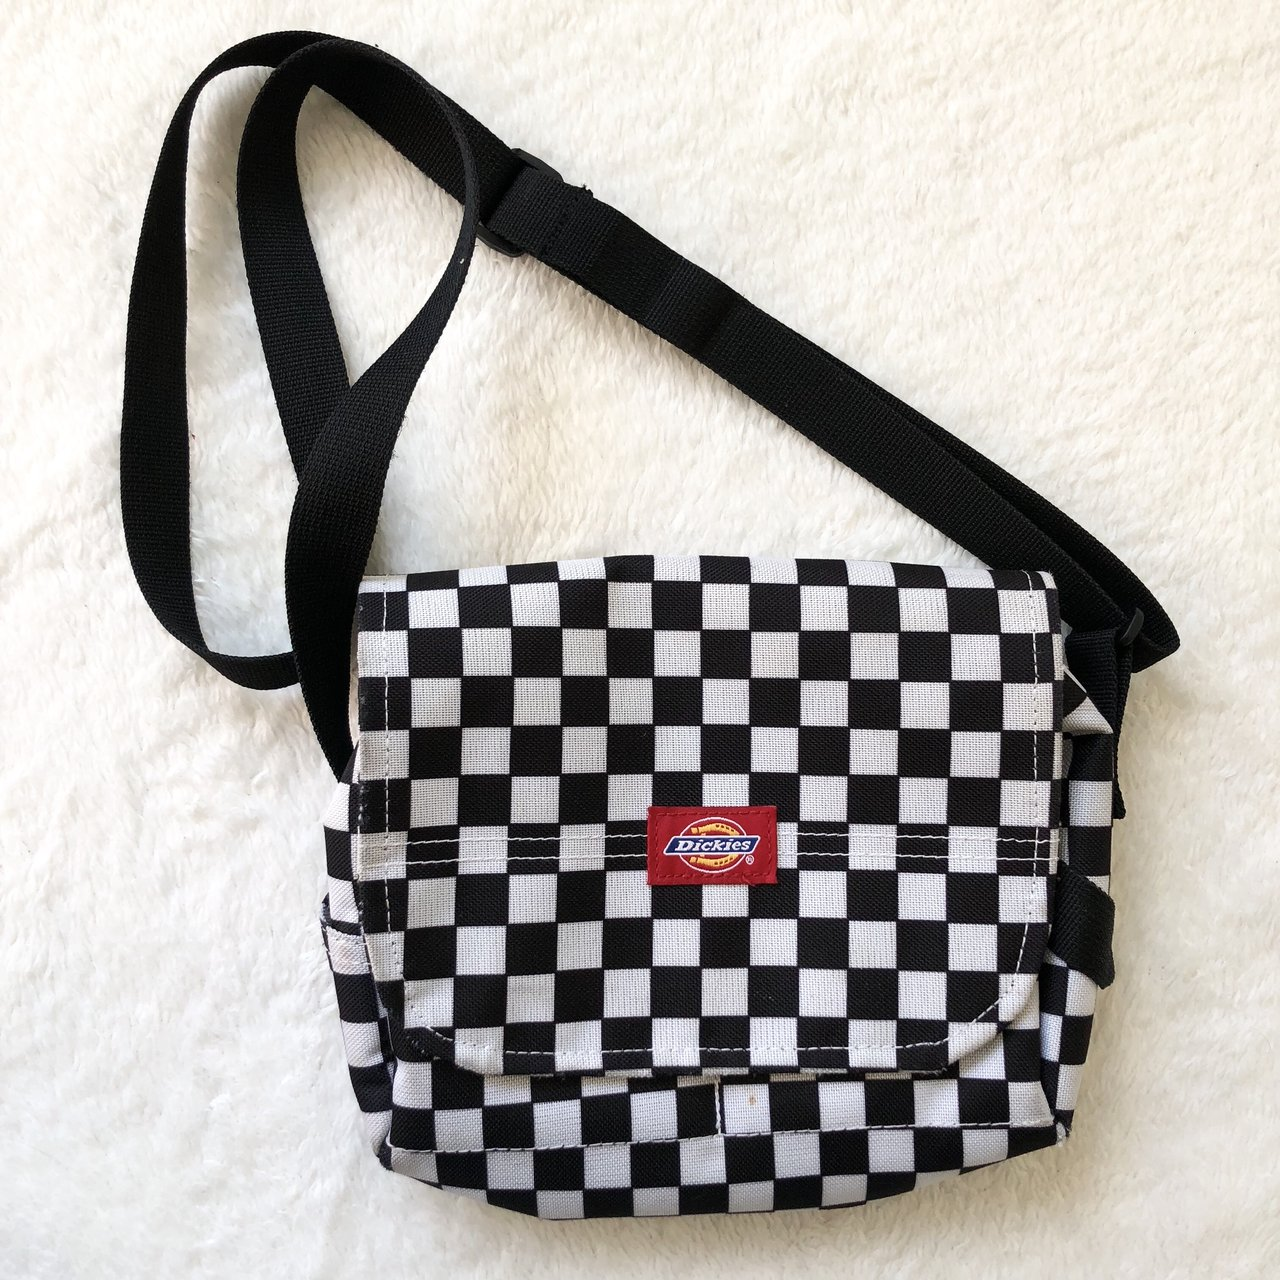 Rare vintage Dickies black and white checkered crossbody and - Depop d1dd7e591c8ec